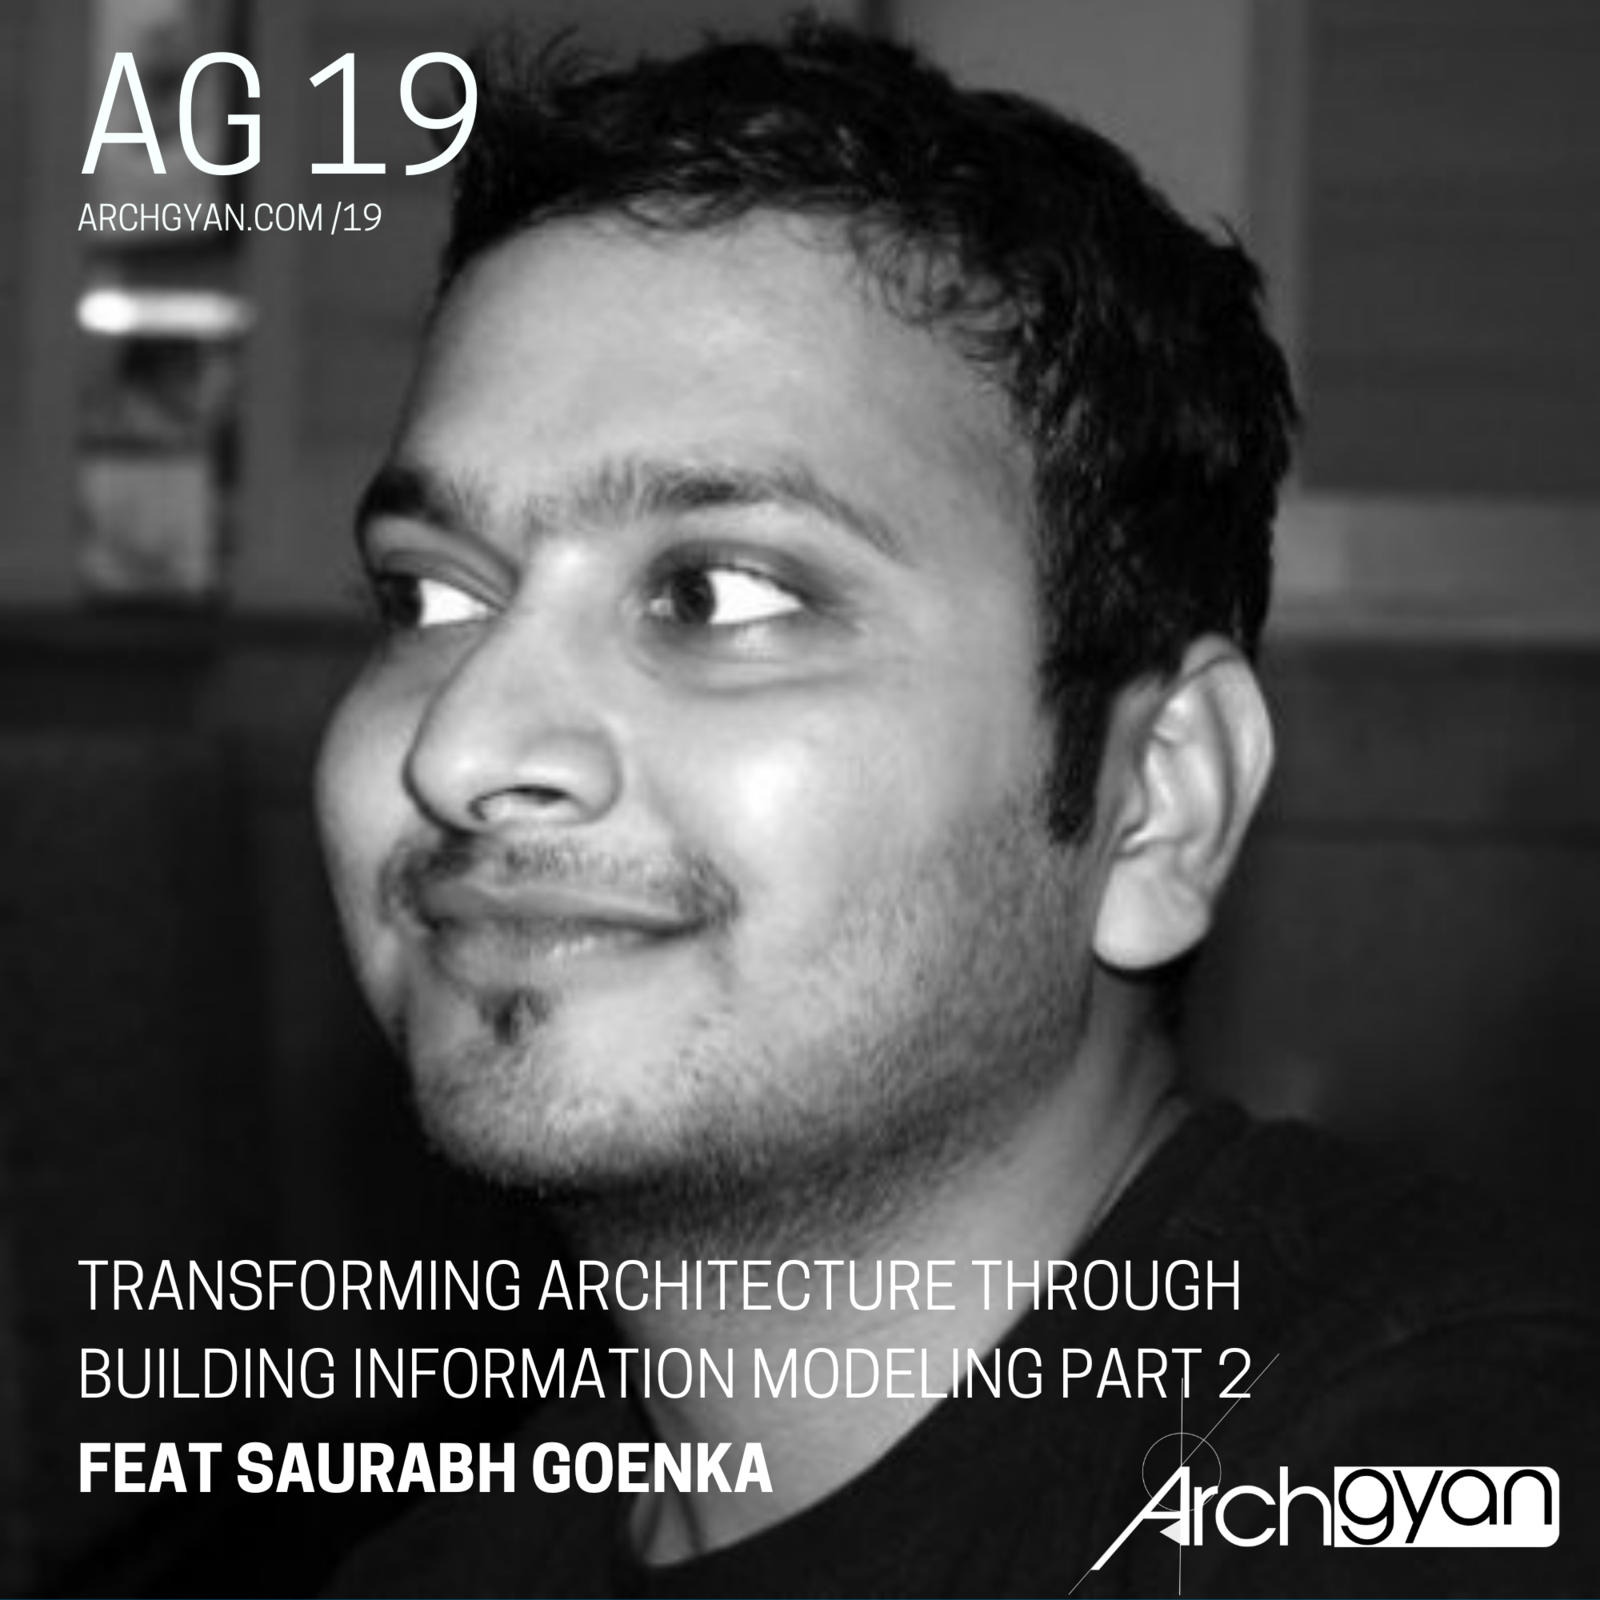 Transforming Architecture through Building Information Modeling Part 2 with Saurabh Goenka